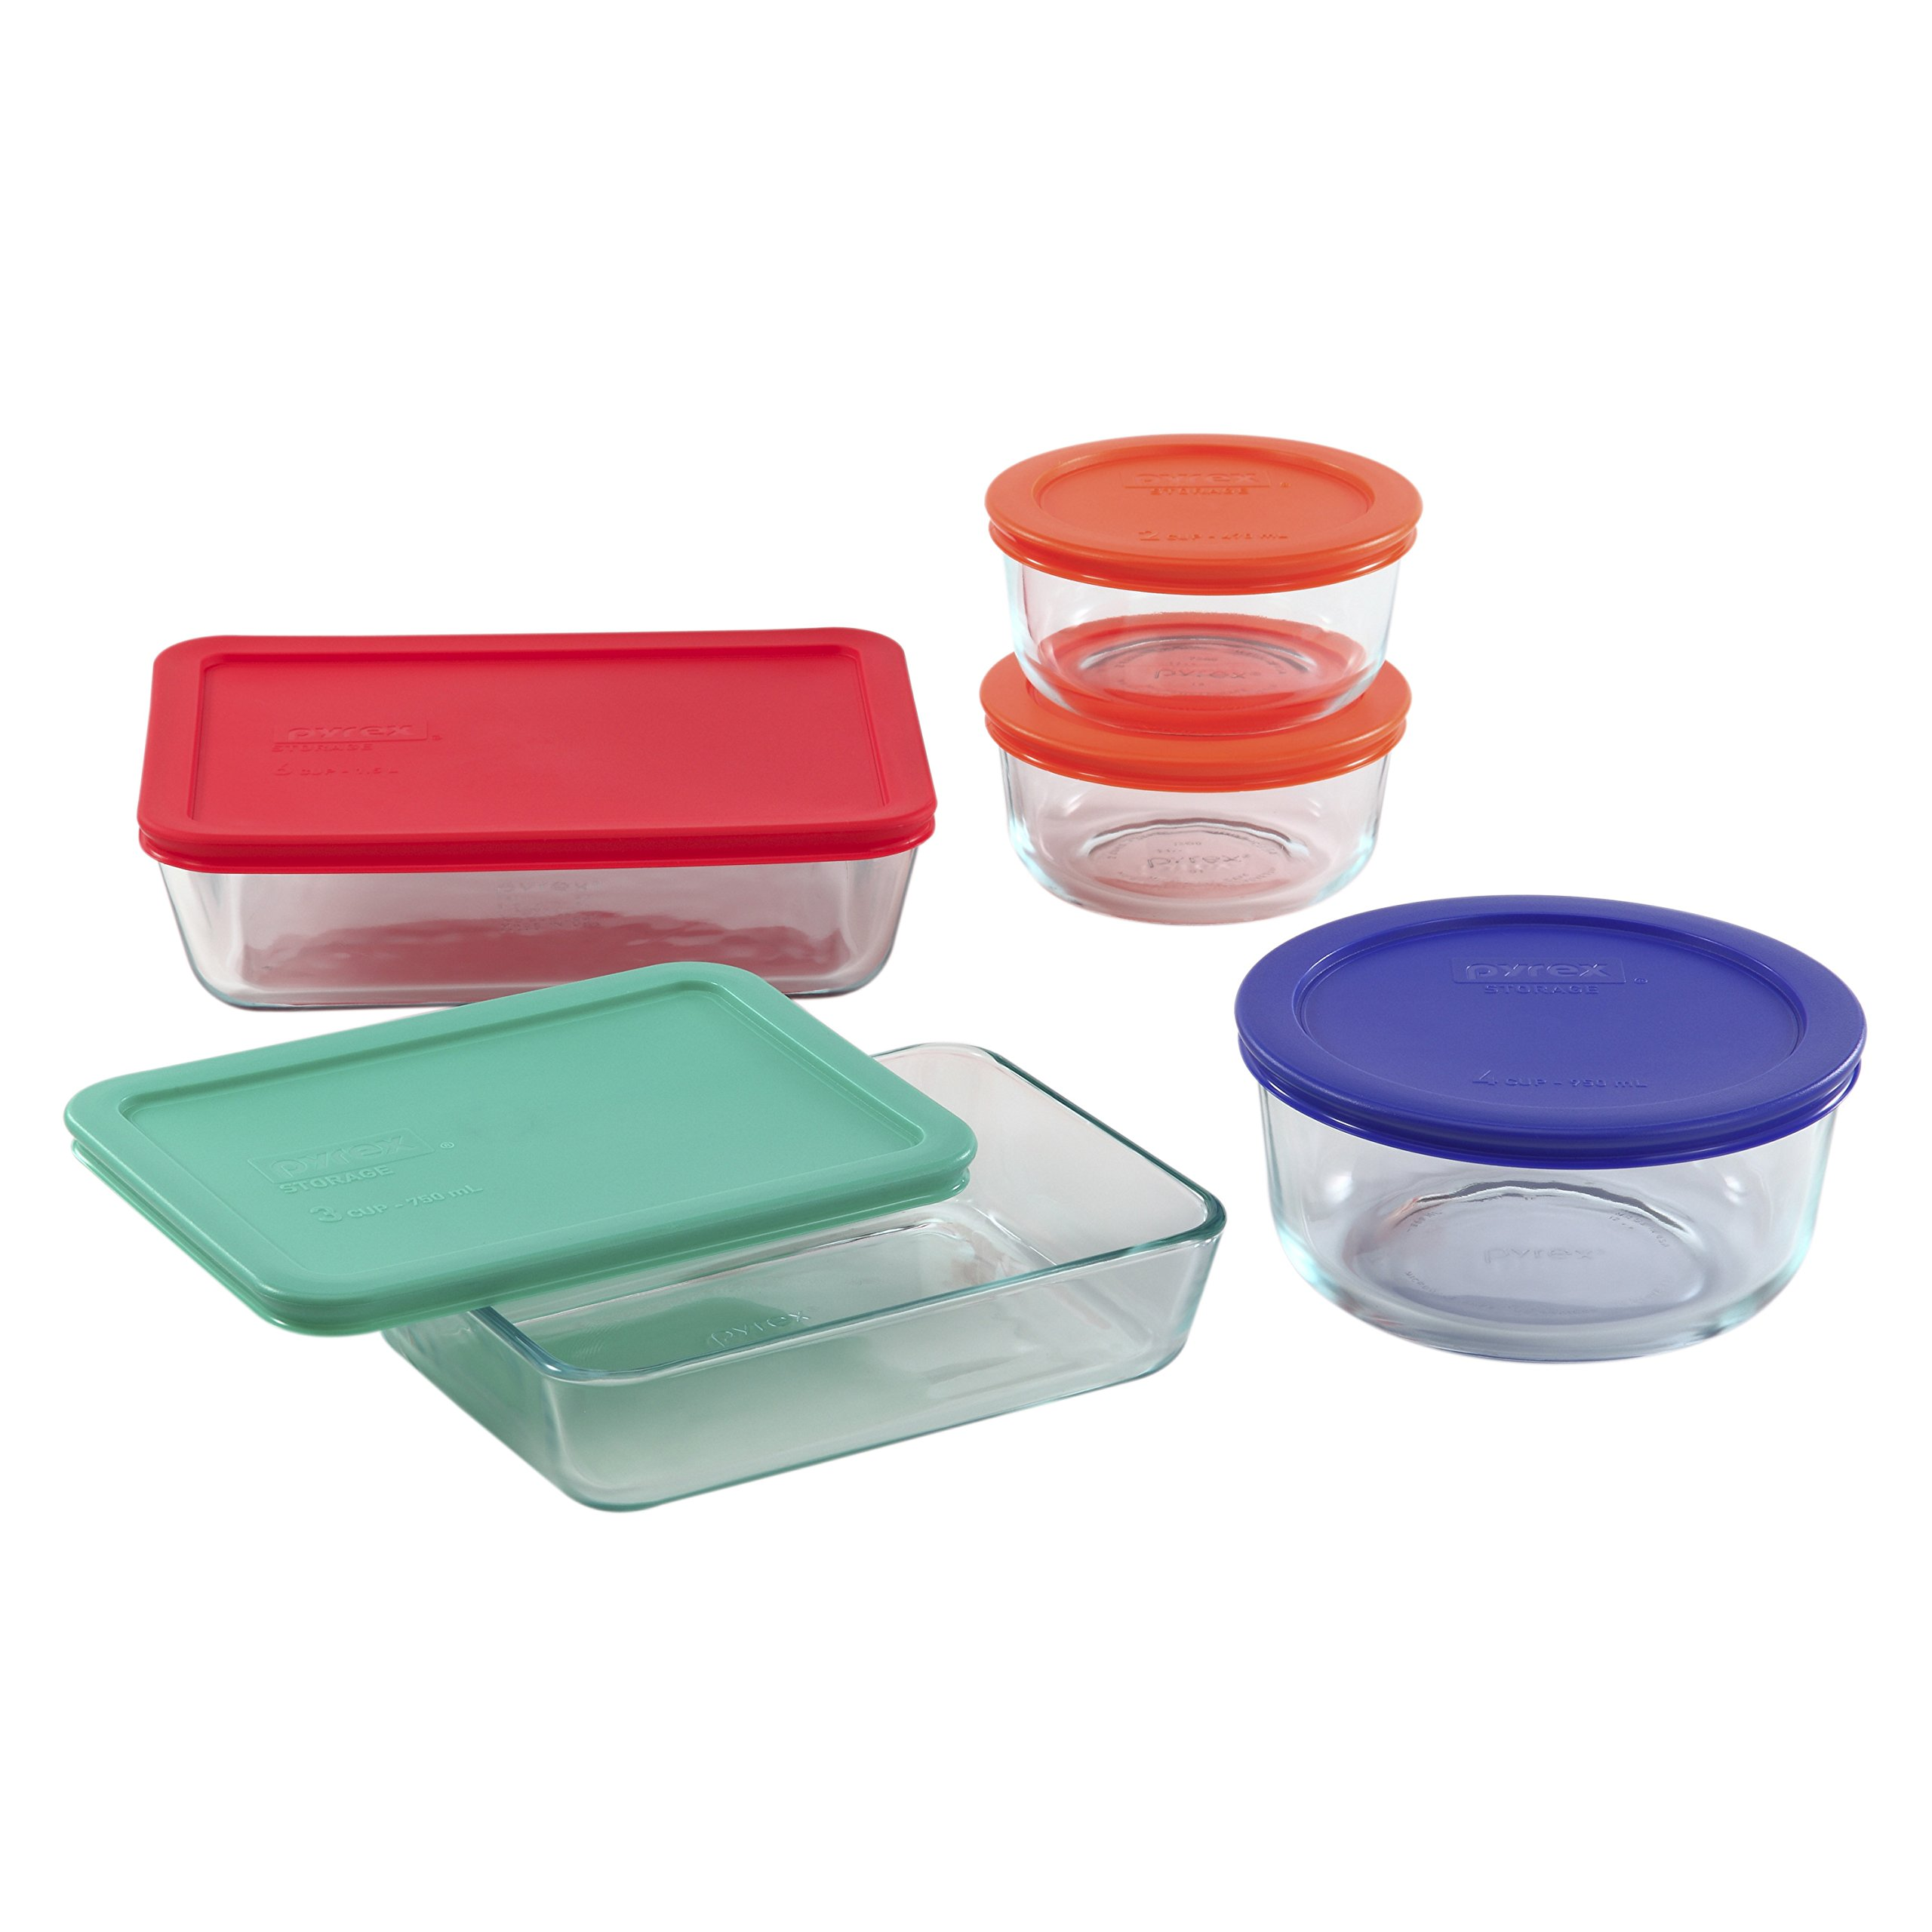 Pyrex Simply Store Glass Food Container Set with Multi-Colored Lids (10-Piece) by Pyrex